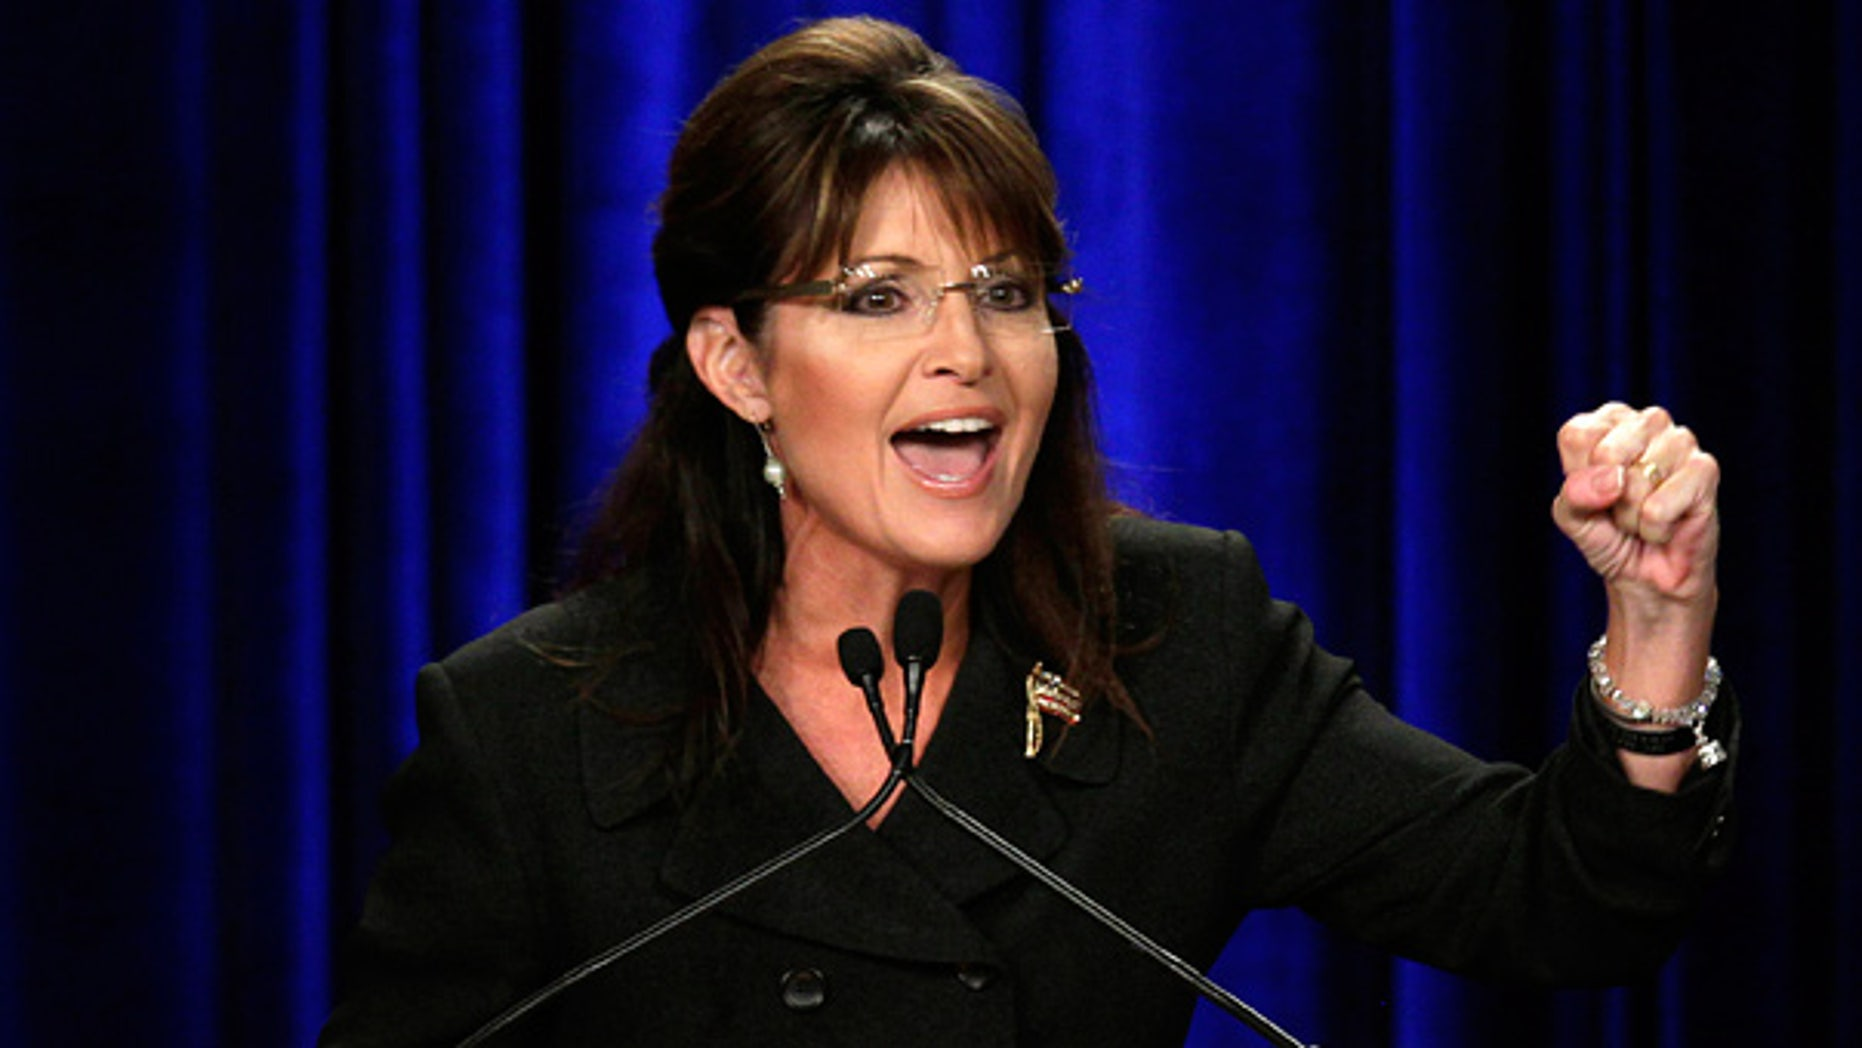 Oct. 16: Former Alaska Gov. Sarah Palin speaks during a rally in Anaheim, Calif.